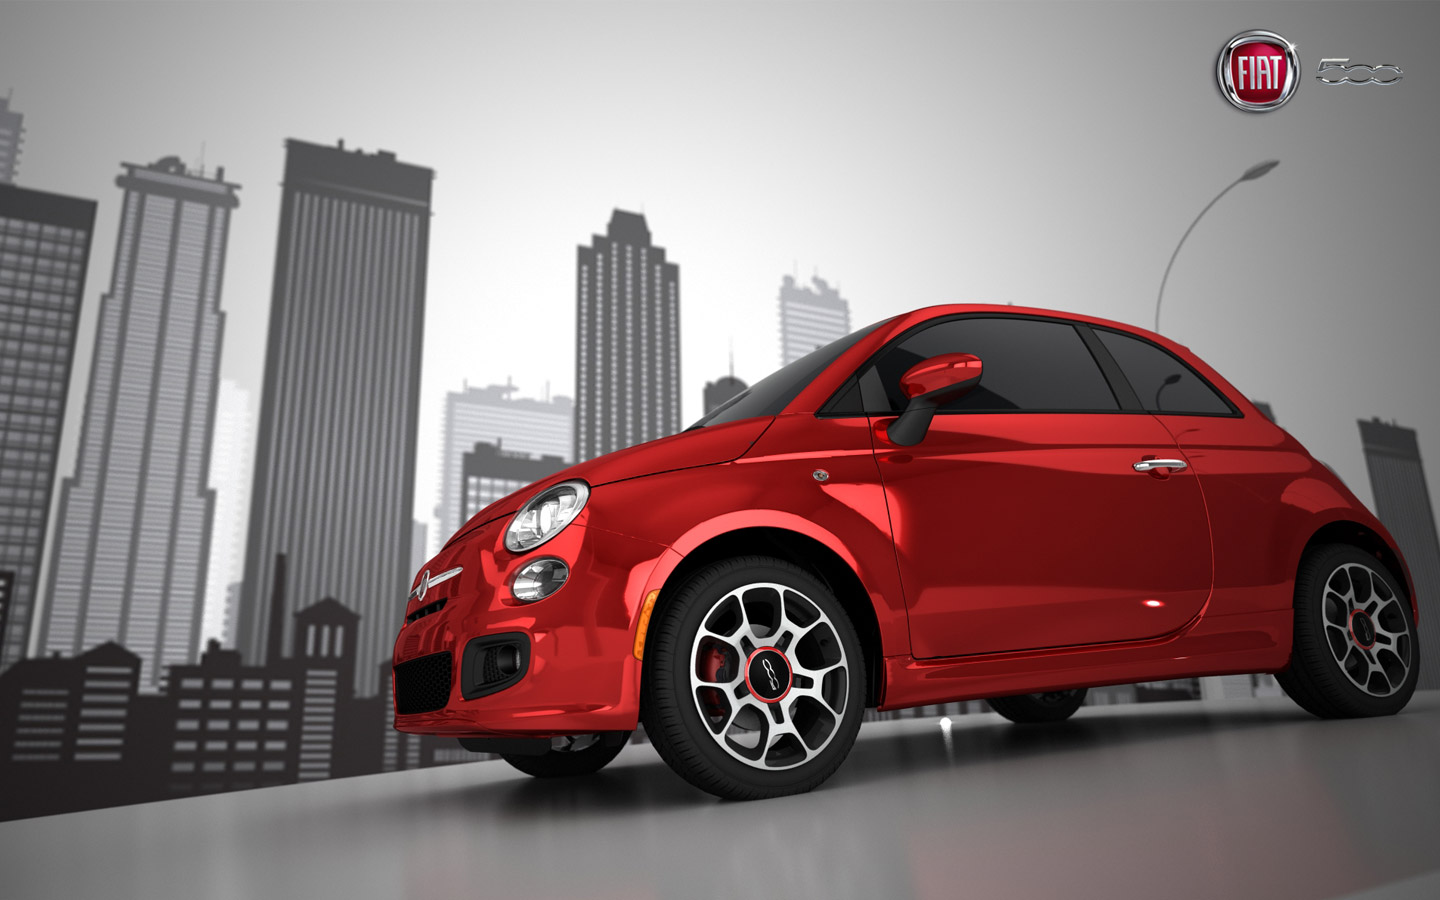 5ooblog | FIAT 5oo: New Fiat 500 US Wallpaper (PC & iphone)